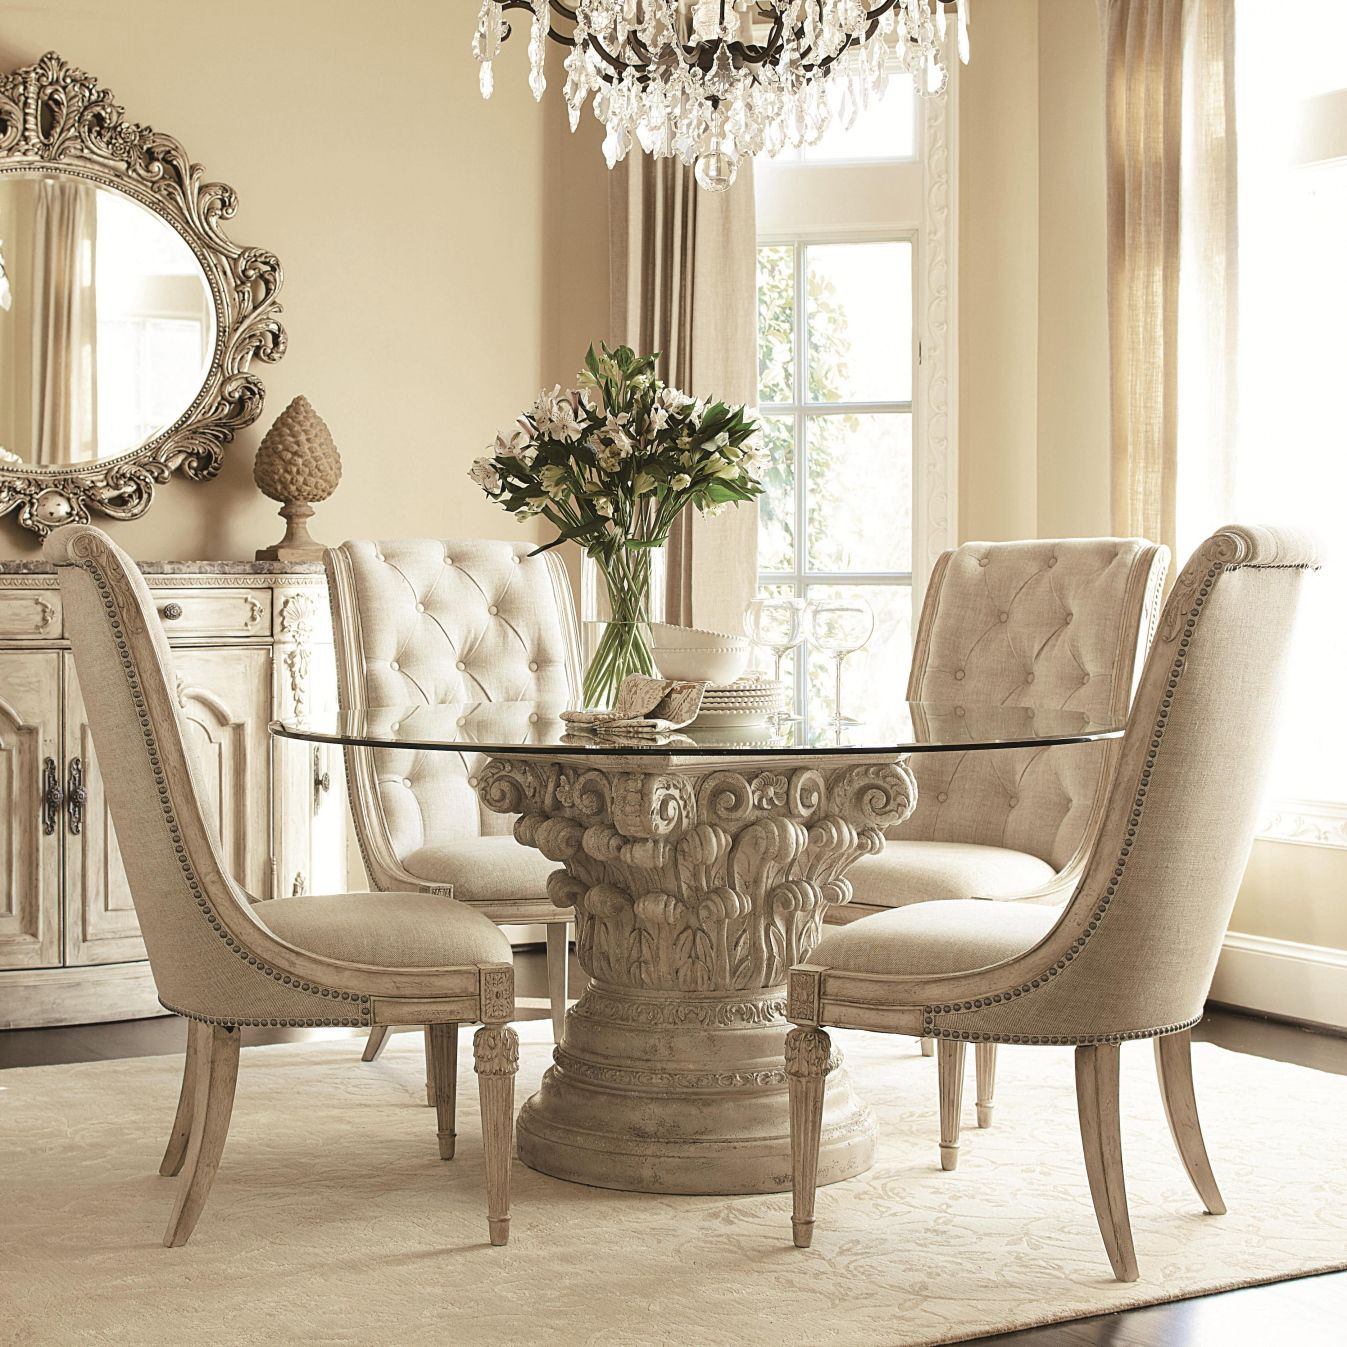 Contemporary Round Dining Room Tables Elegant Kitchen Table Sets  Contemporary Modern Furniture Check